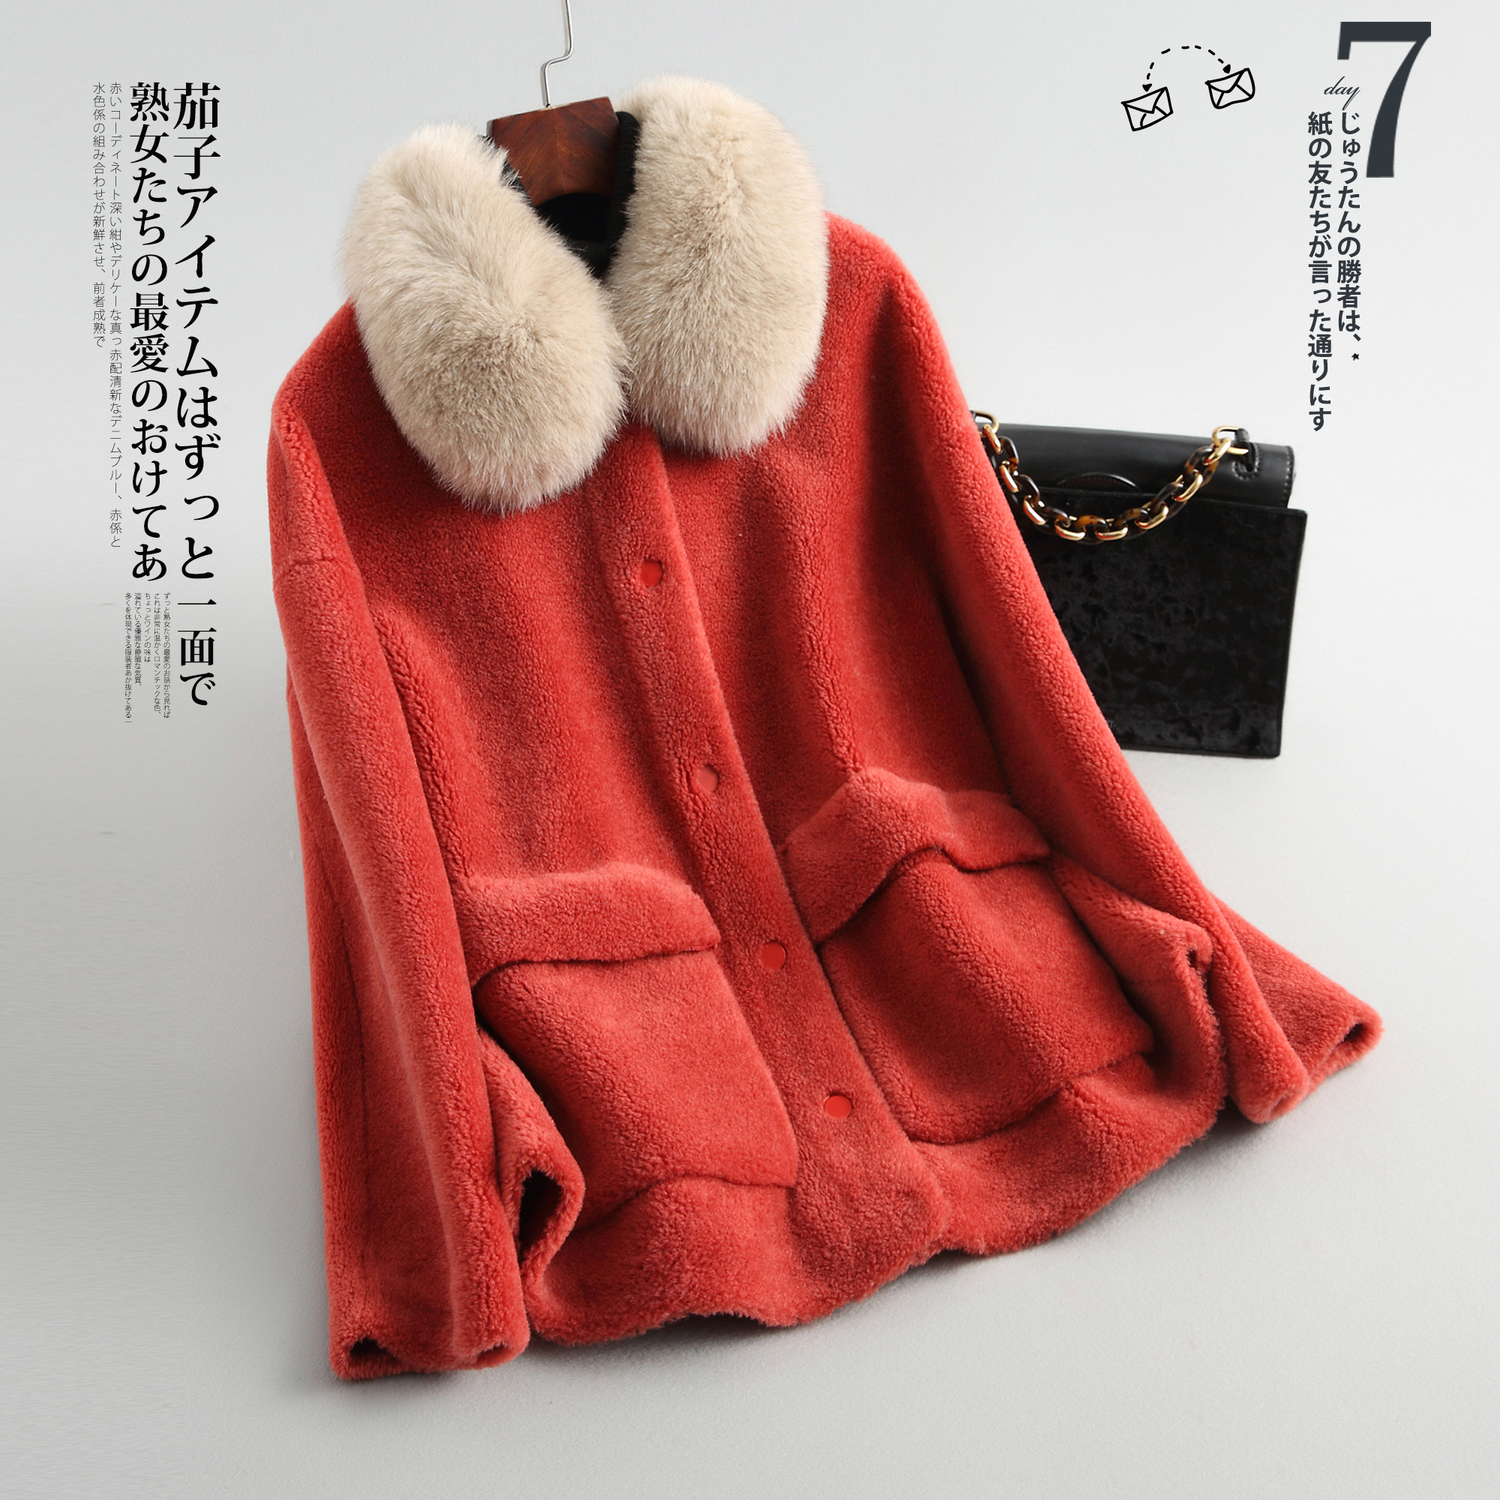 Winter Coat Women Clothes 2020 100% Real Fur Coat + Fox Fur Collar Ladies Thick Warm Wool Jacket Suede Lining Hiver Y808